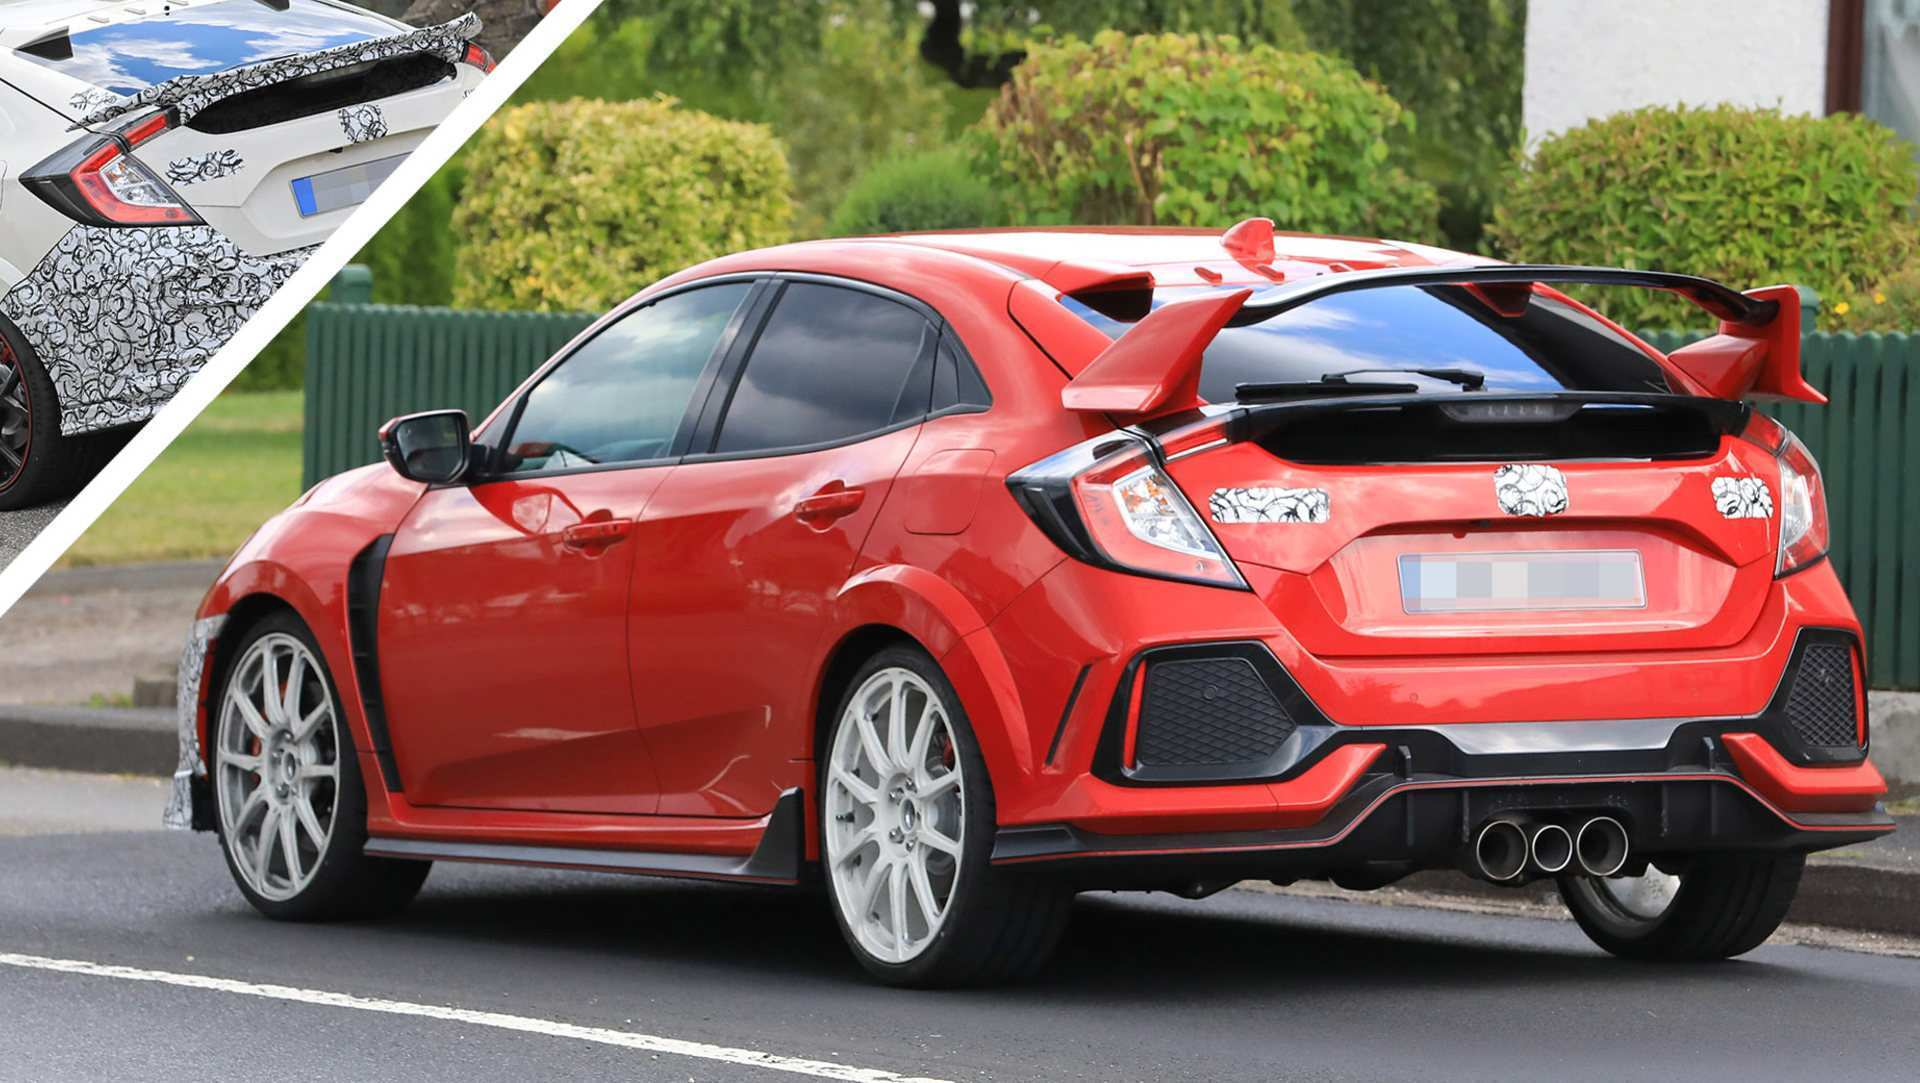 91 Gallery of 2019 Honda Type R History for 2019 Honda Type R